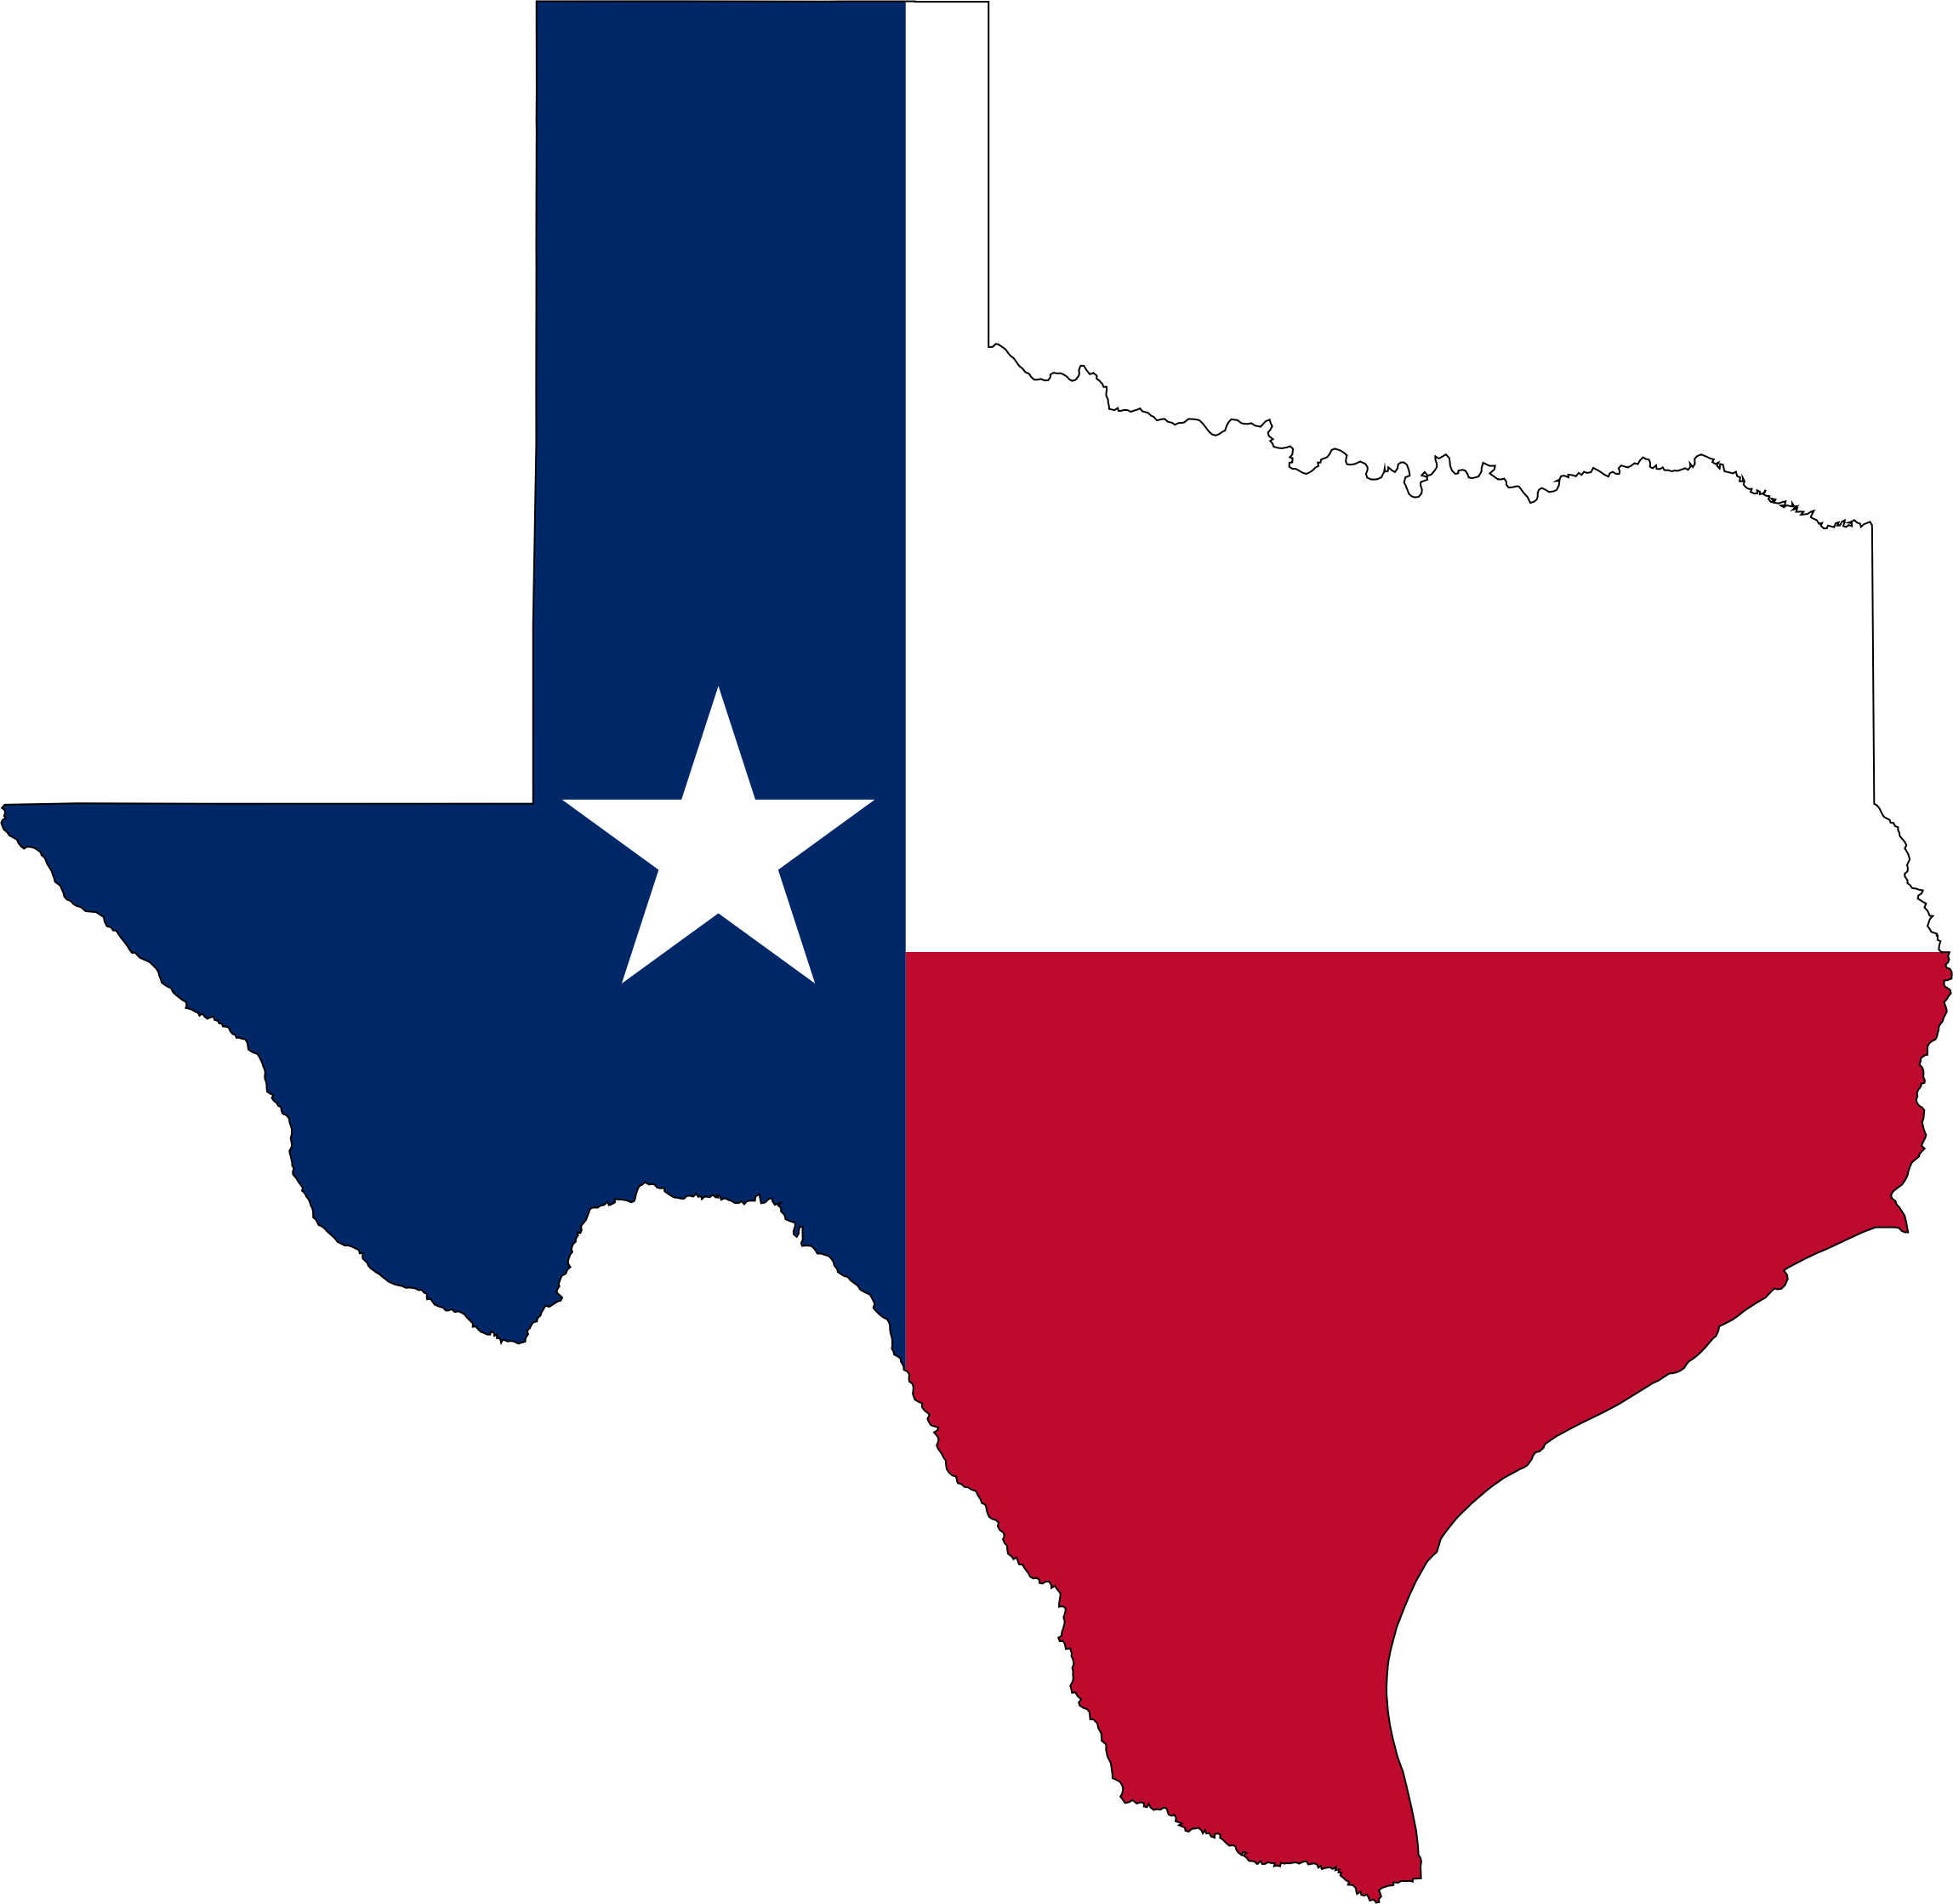 Texas icon png. State flag map icons